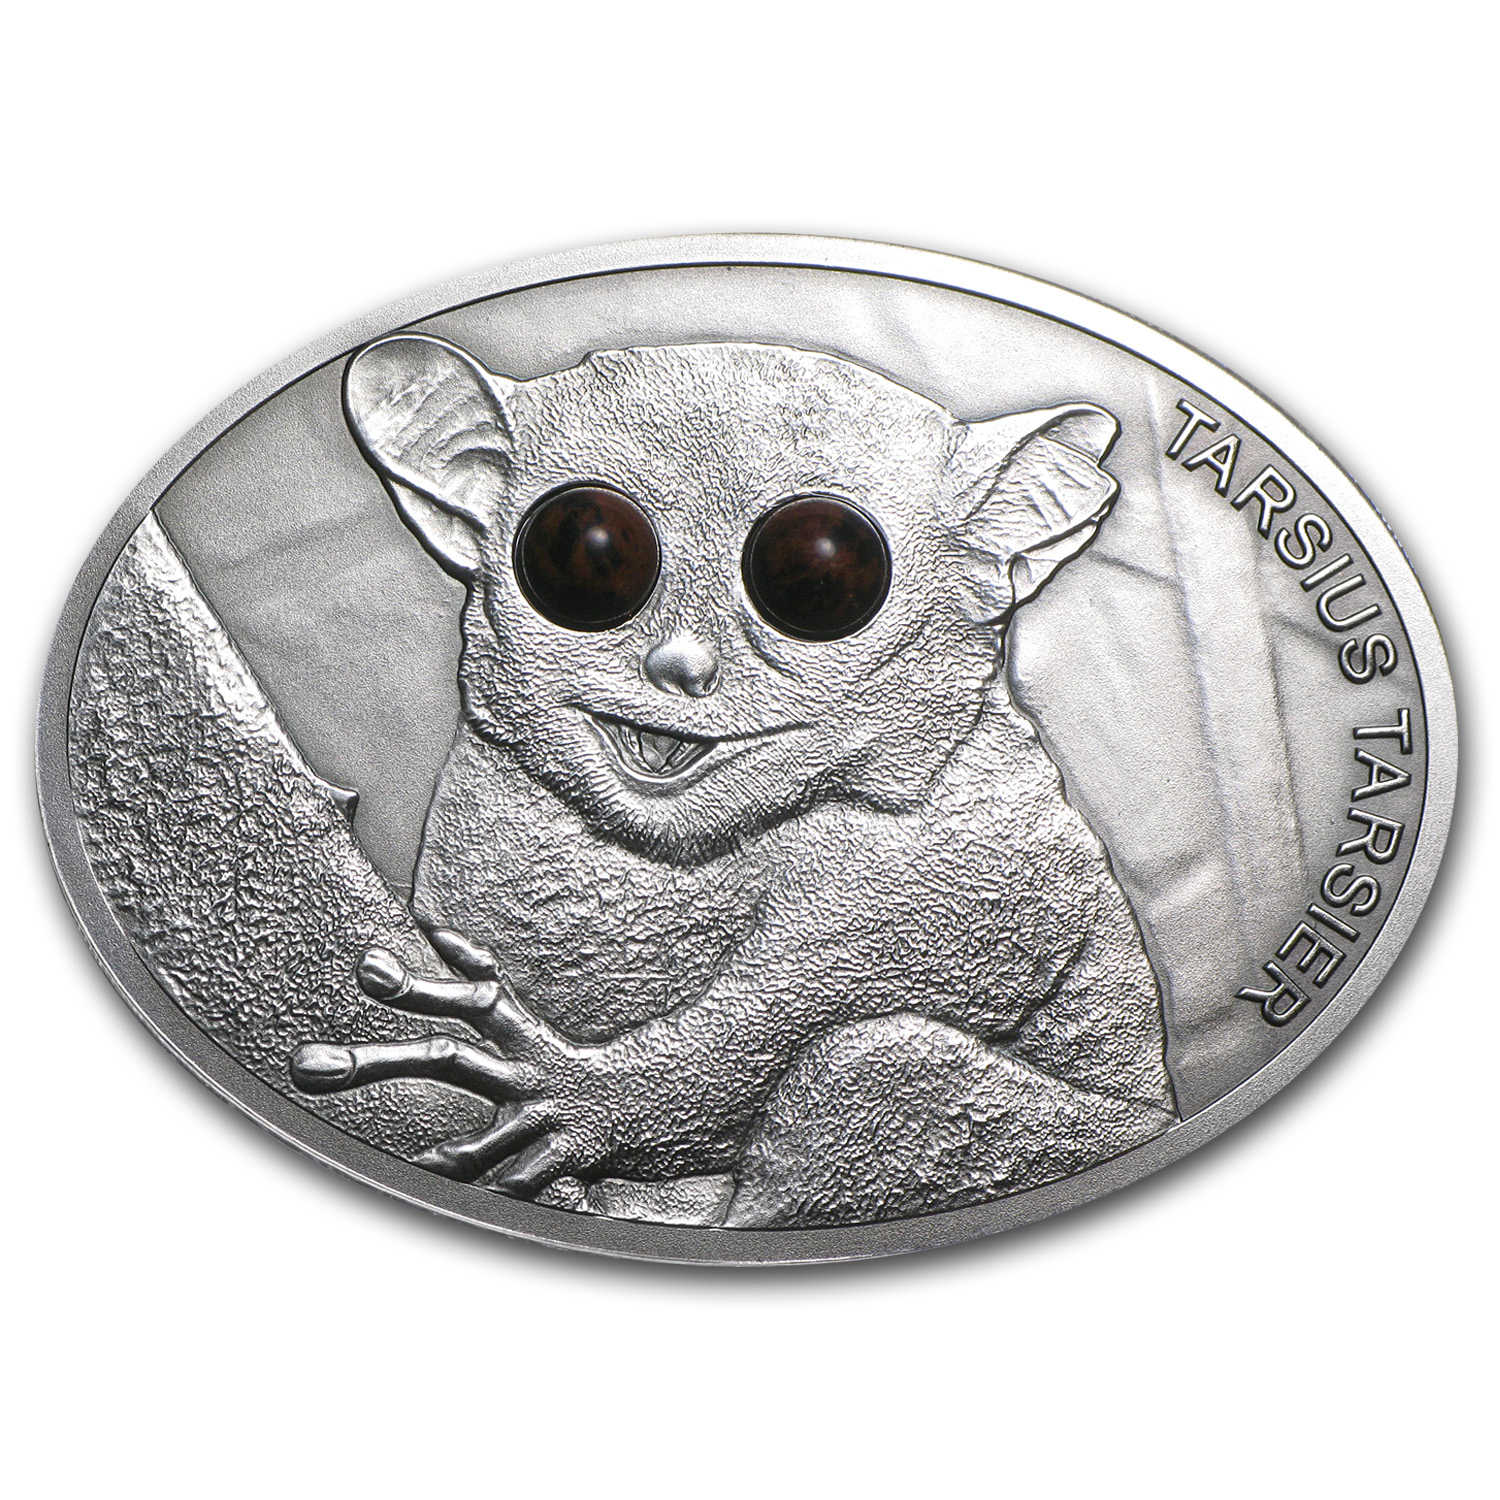 2013 Fiji 1 oz Silver Fascinating Wildlife Maki Tarsius Tarsier